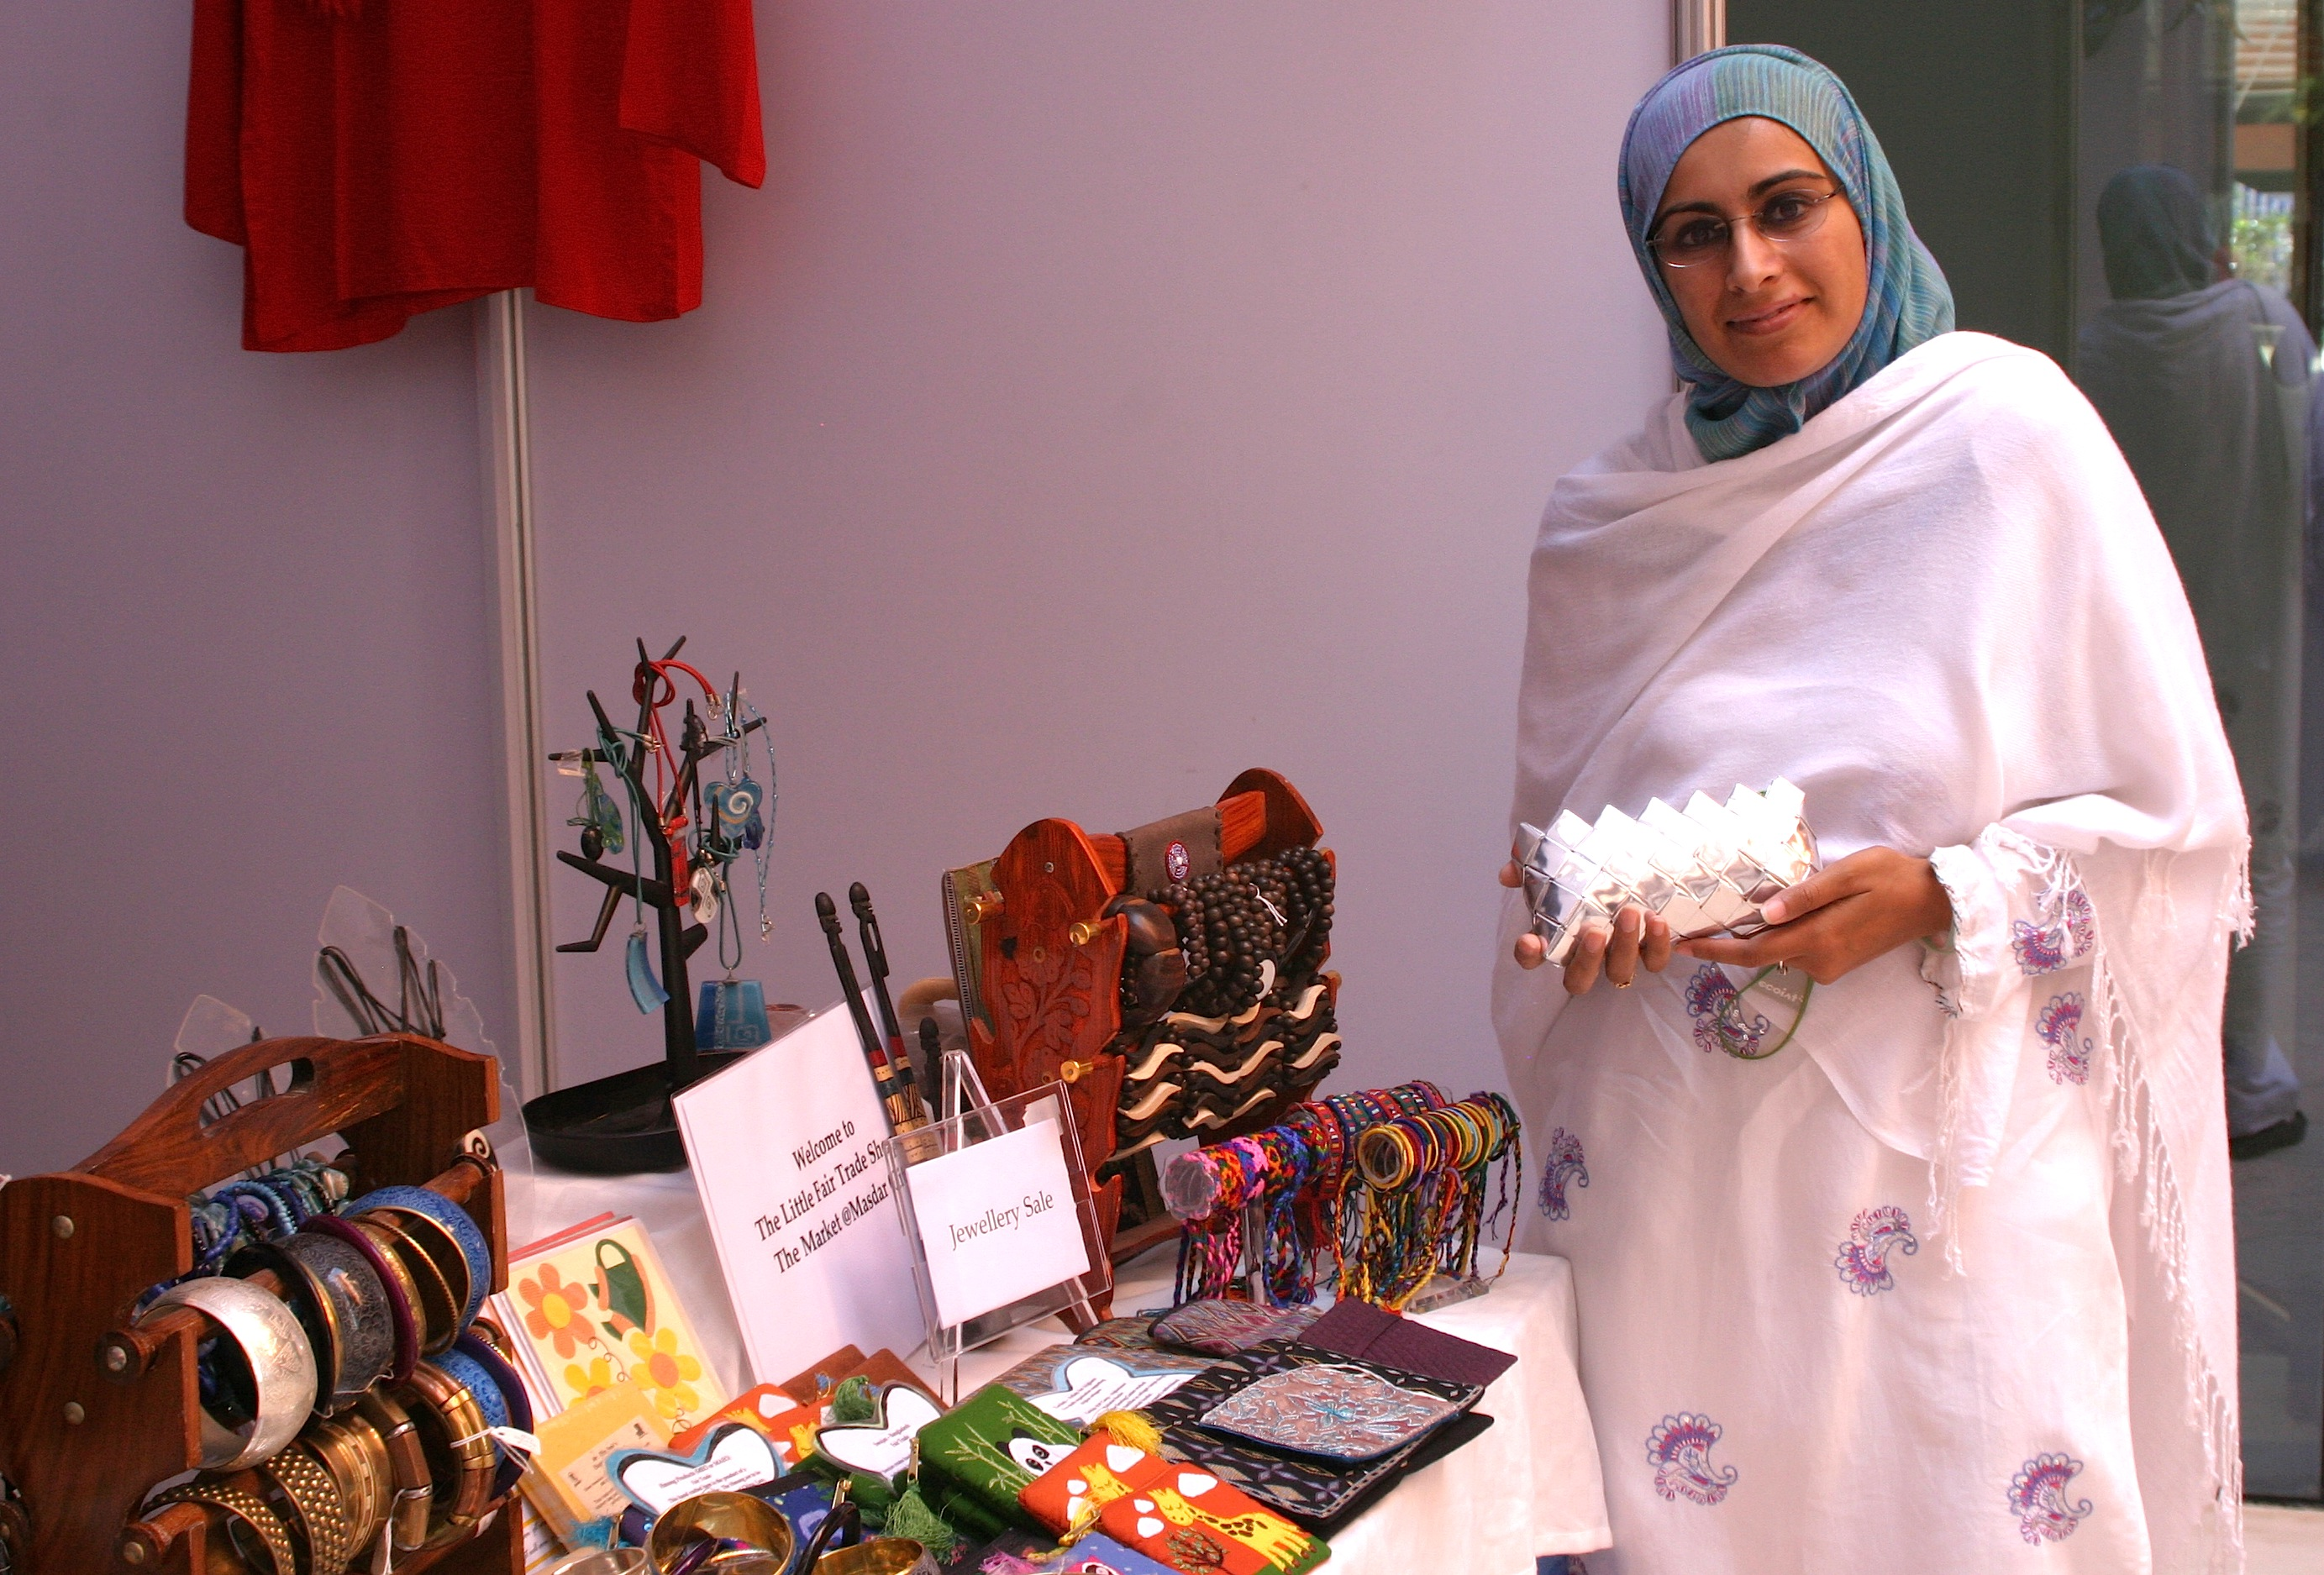 The Little Fair Trade Shop Shows Masdar Its Big Heart